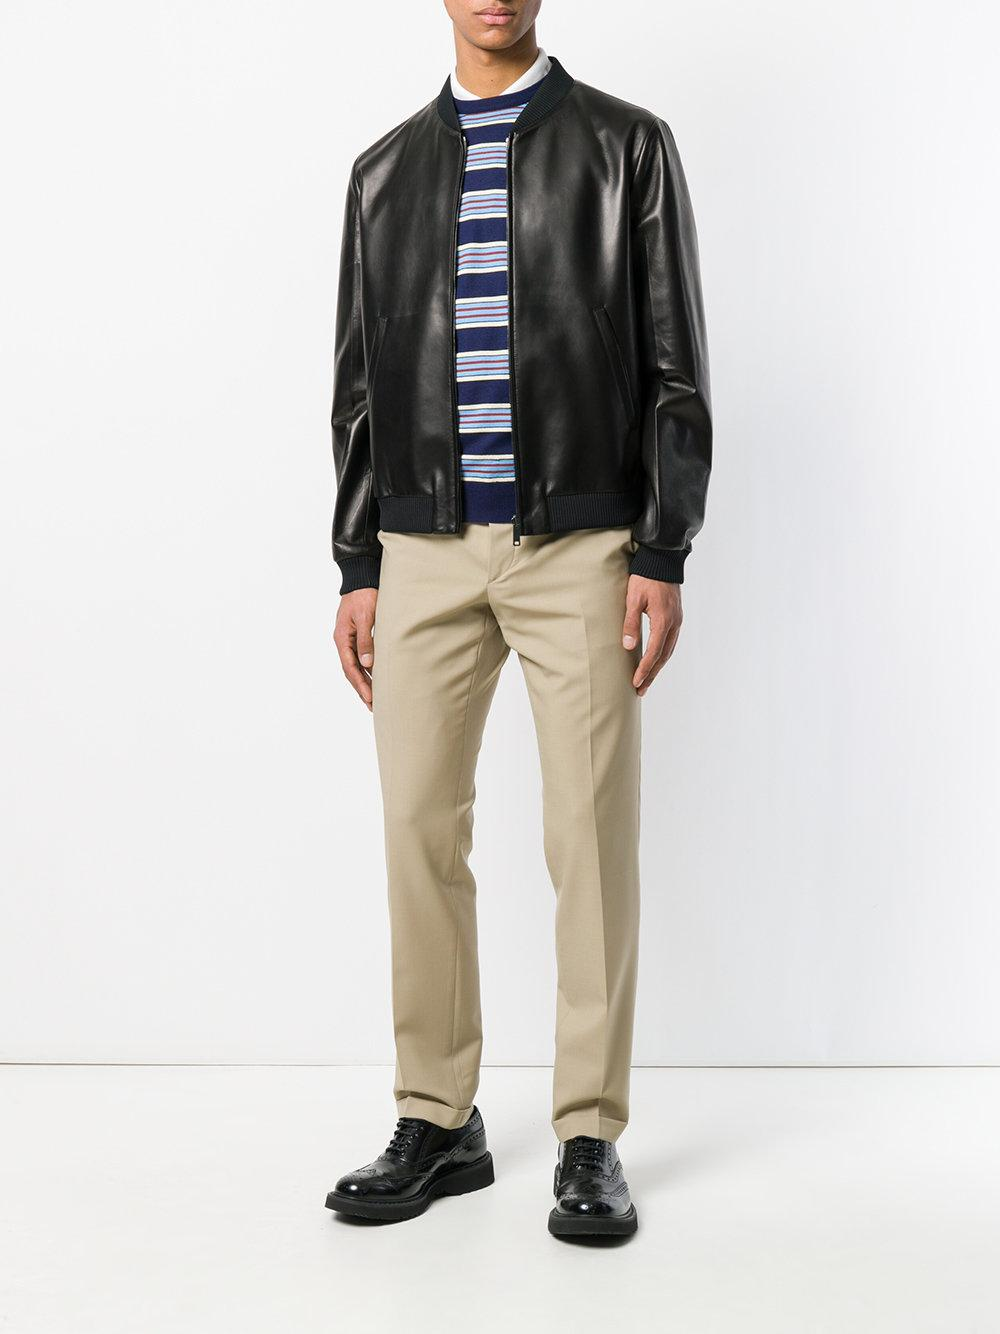 Prada Wool Straight Cuffed Tailored Trousers in Brown for Men